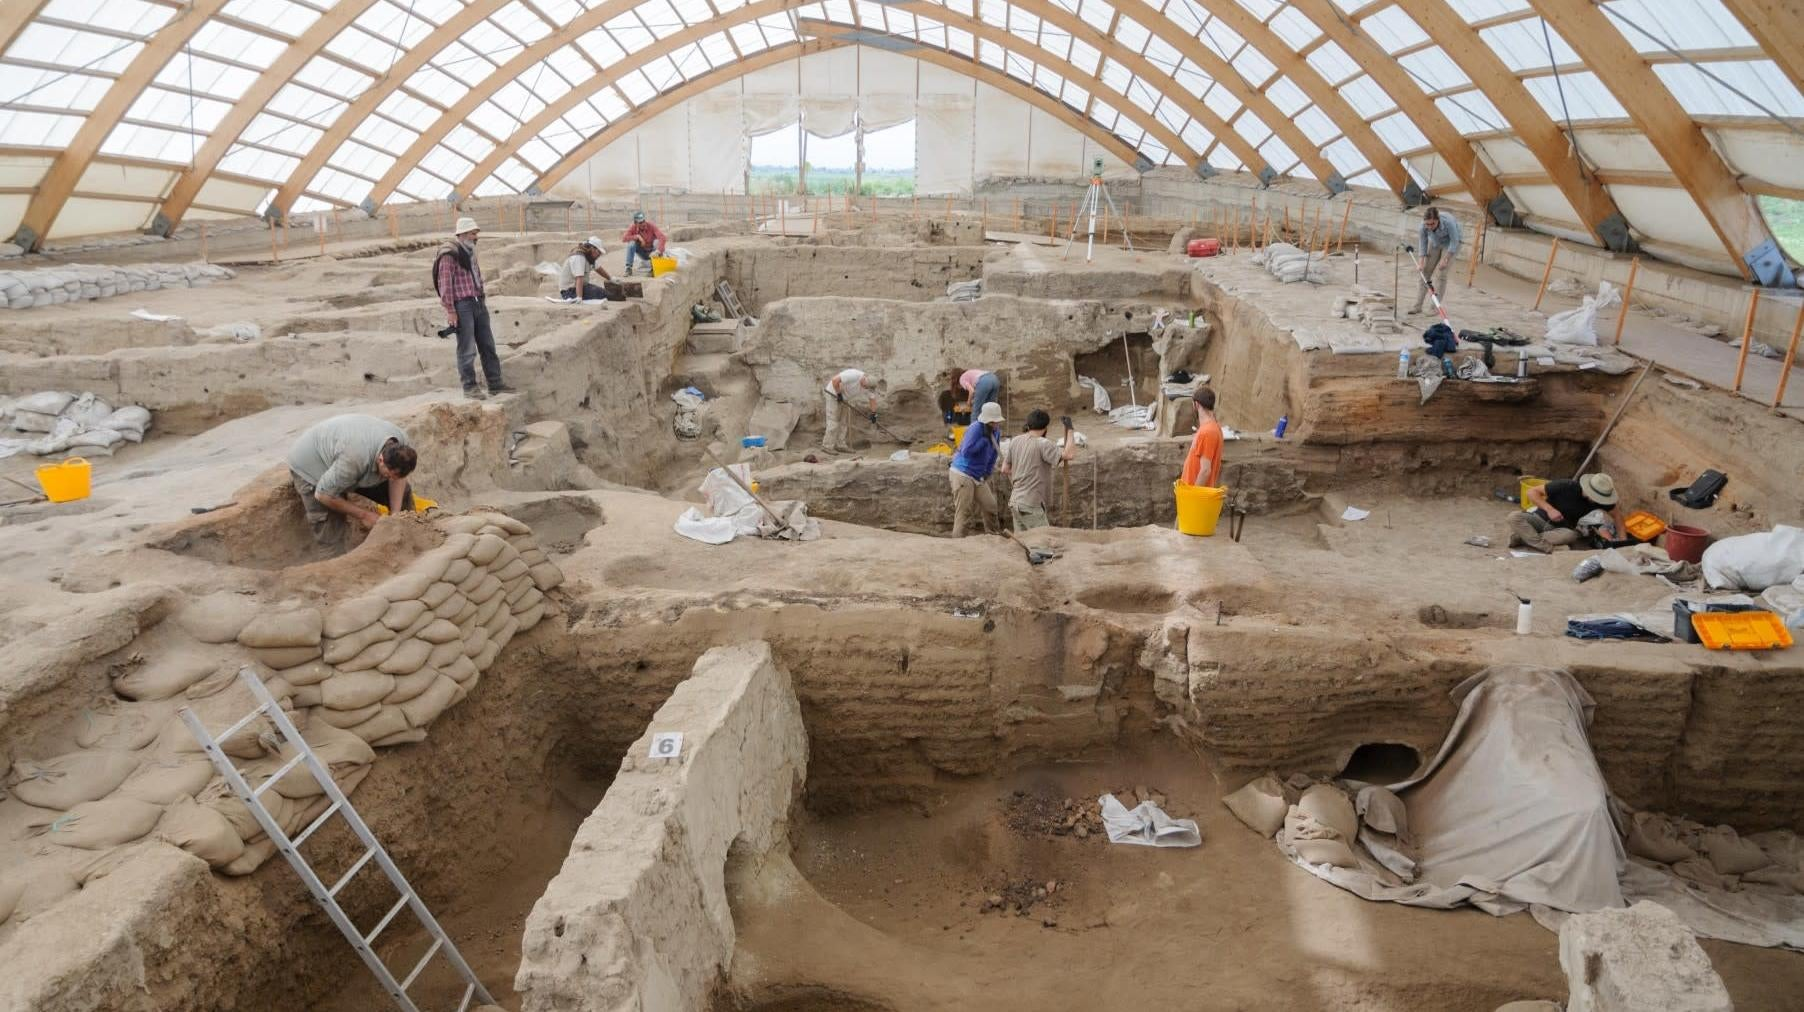 One Of The World's Most Ancient Cities Experienced Surprisingly Modern Problems